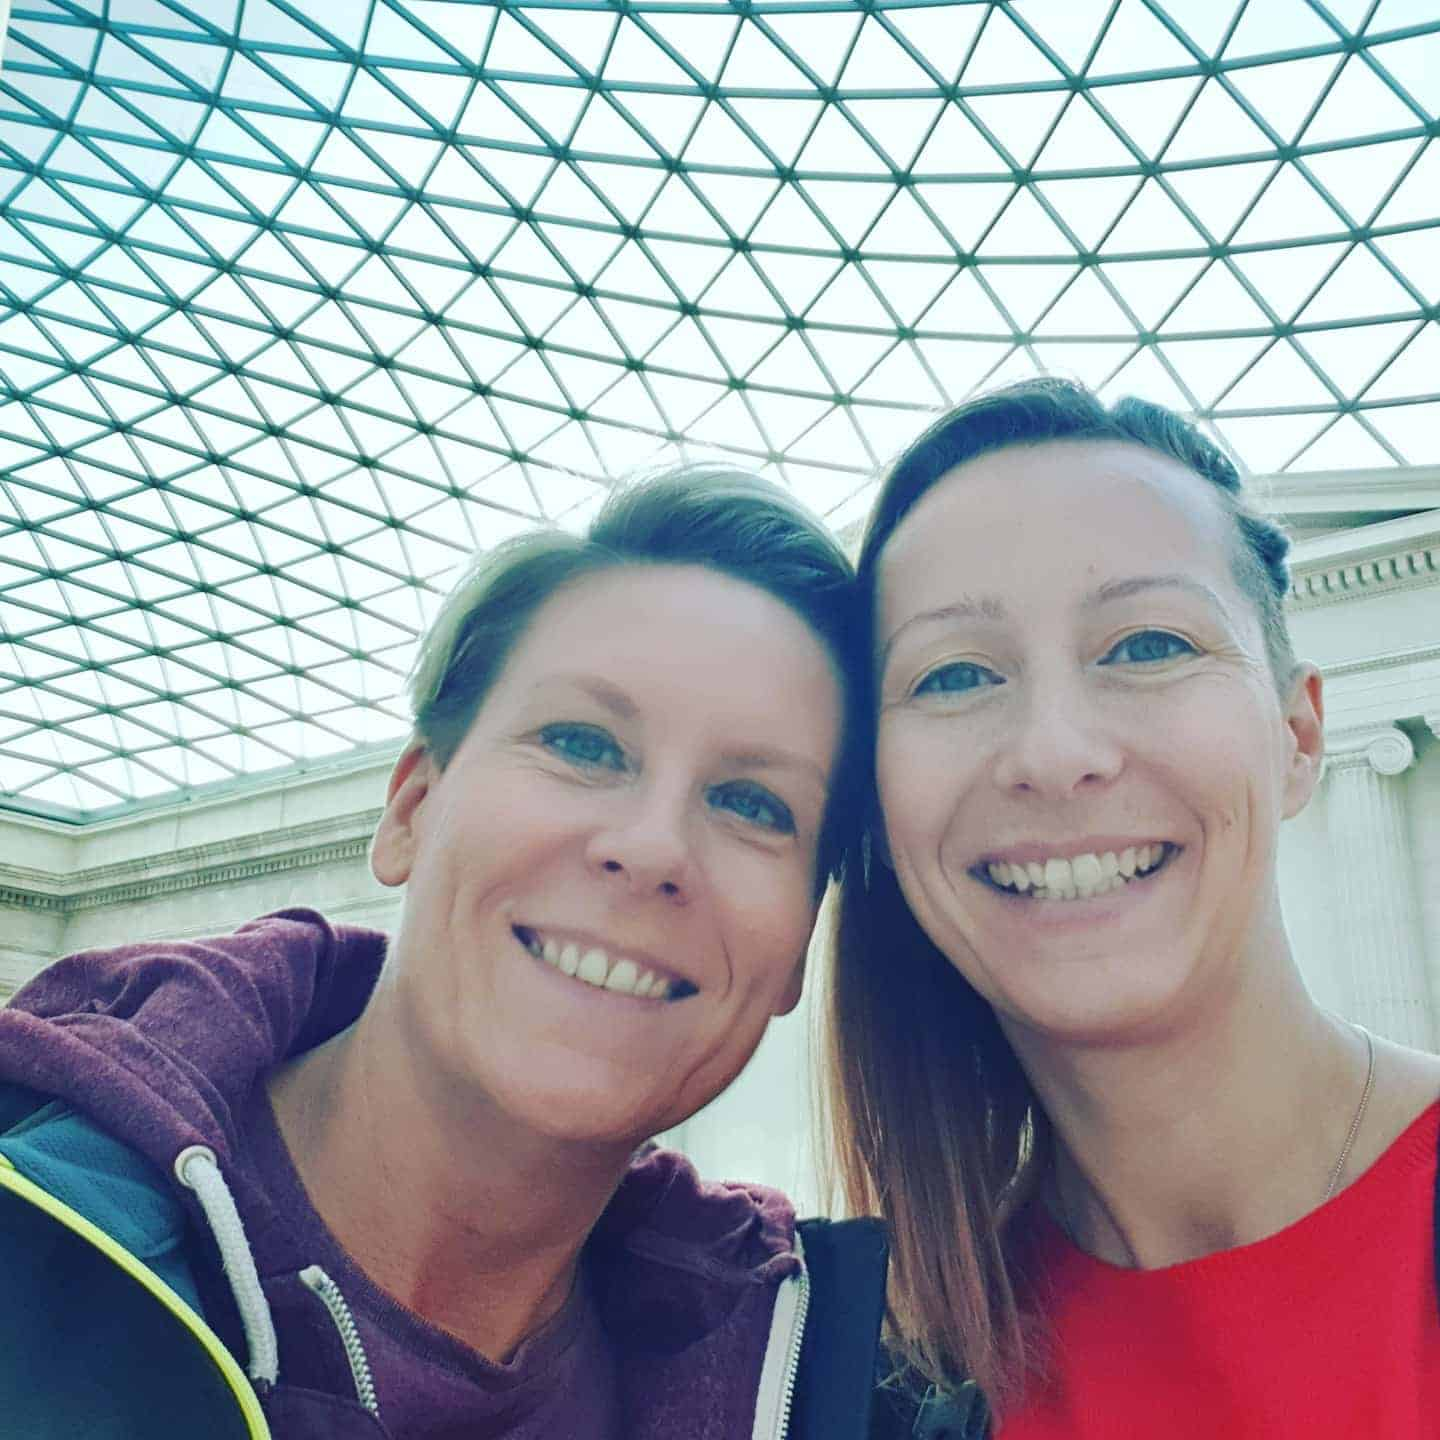 Clare and her partner at the British Museum